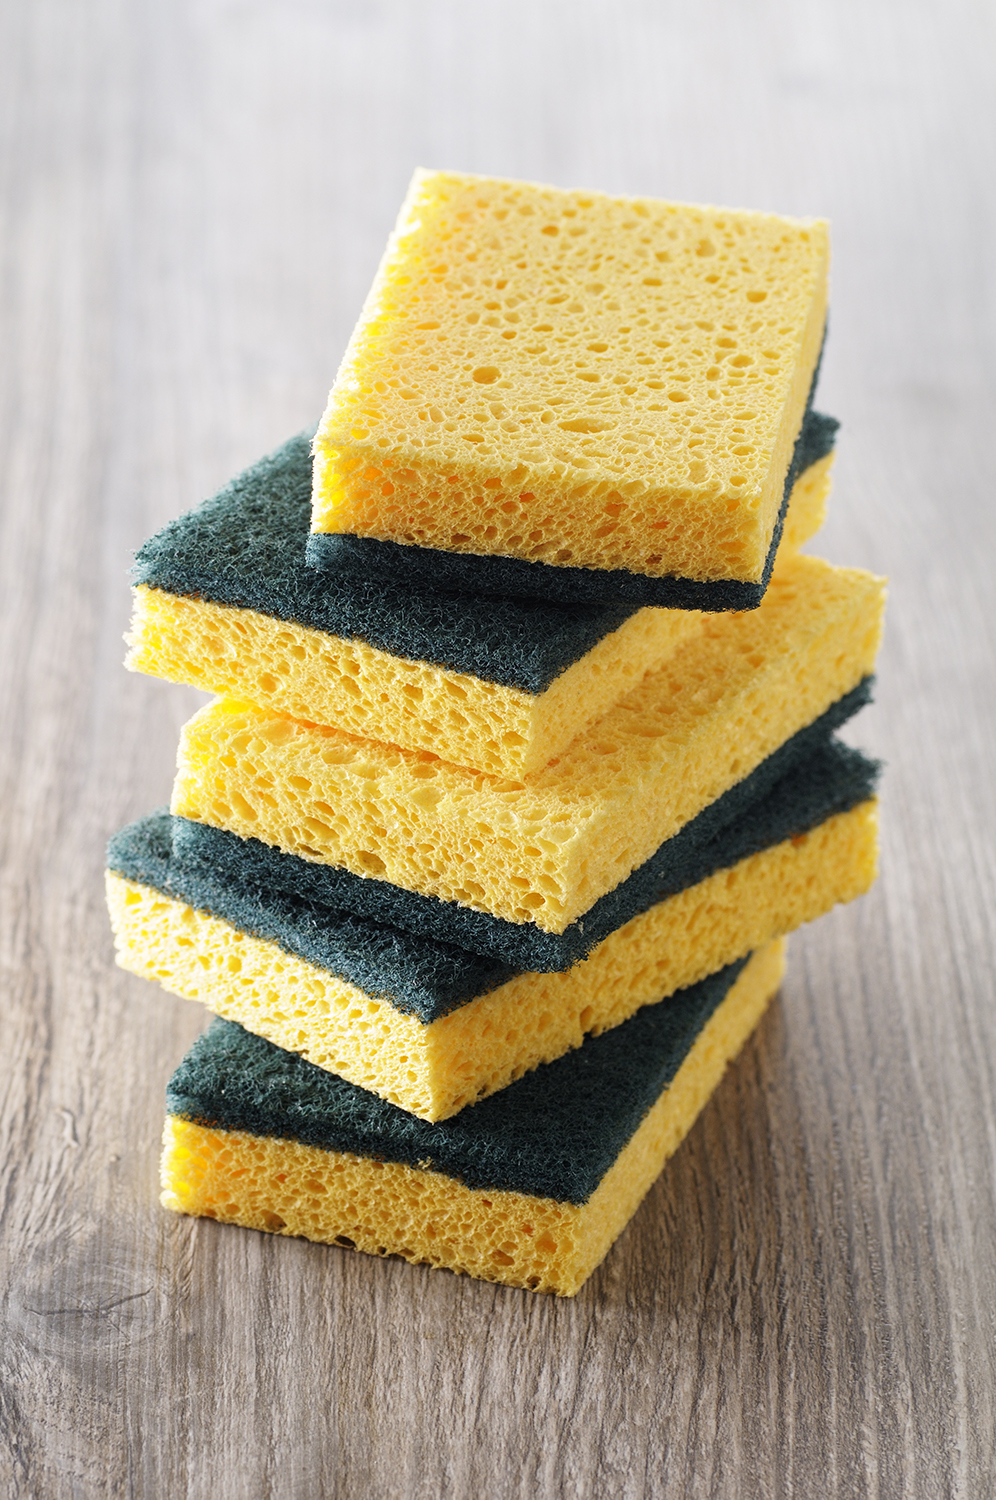 Disinfect Your Sponge